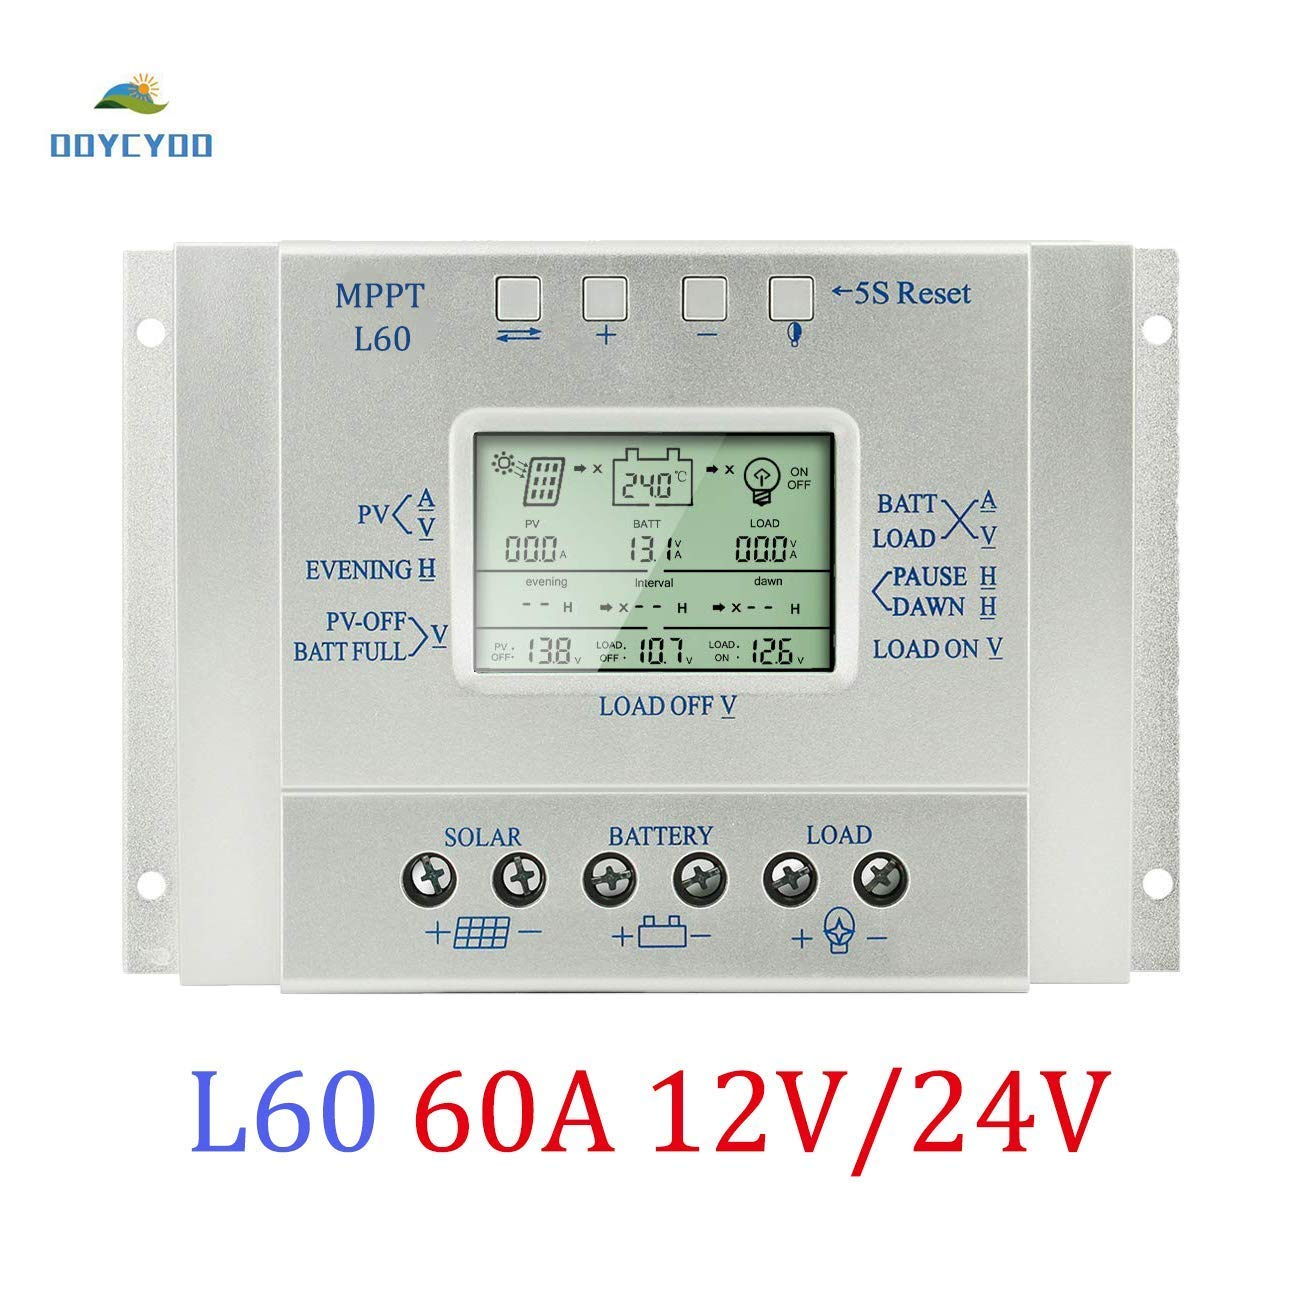 OOYCYOO 60A Solar Charge Controller 60 amp Solar Panel Battery Regulator 12V 24V with LCD Display,USB 5V 1500mA Output (L60A)